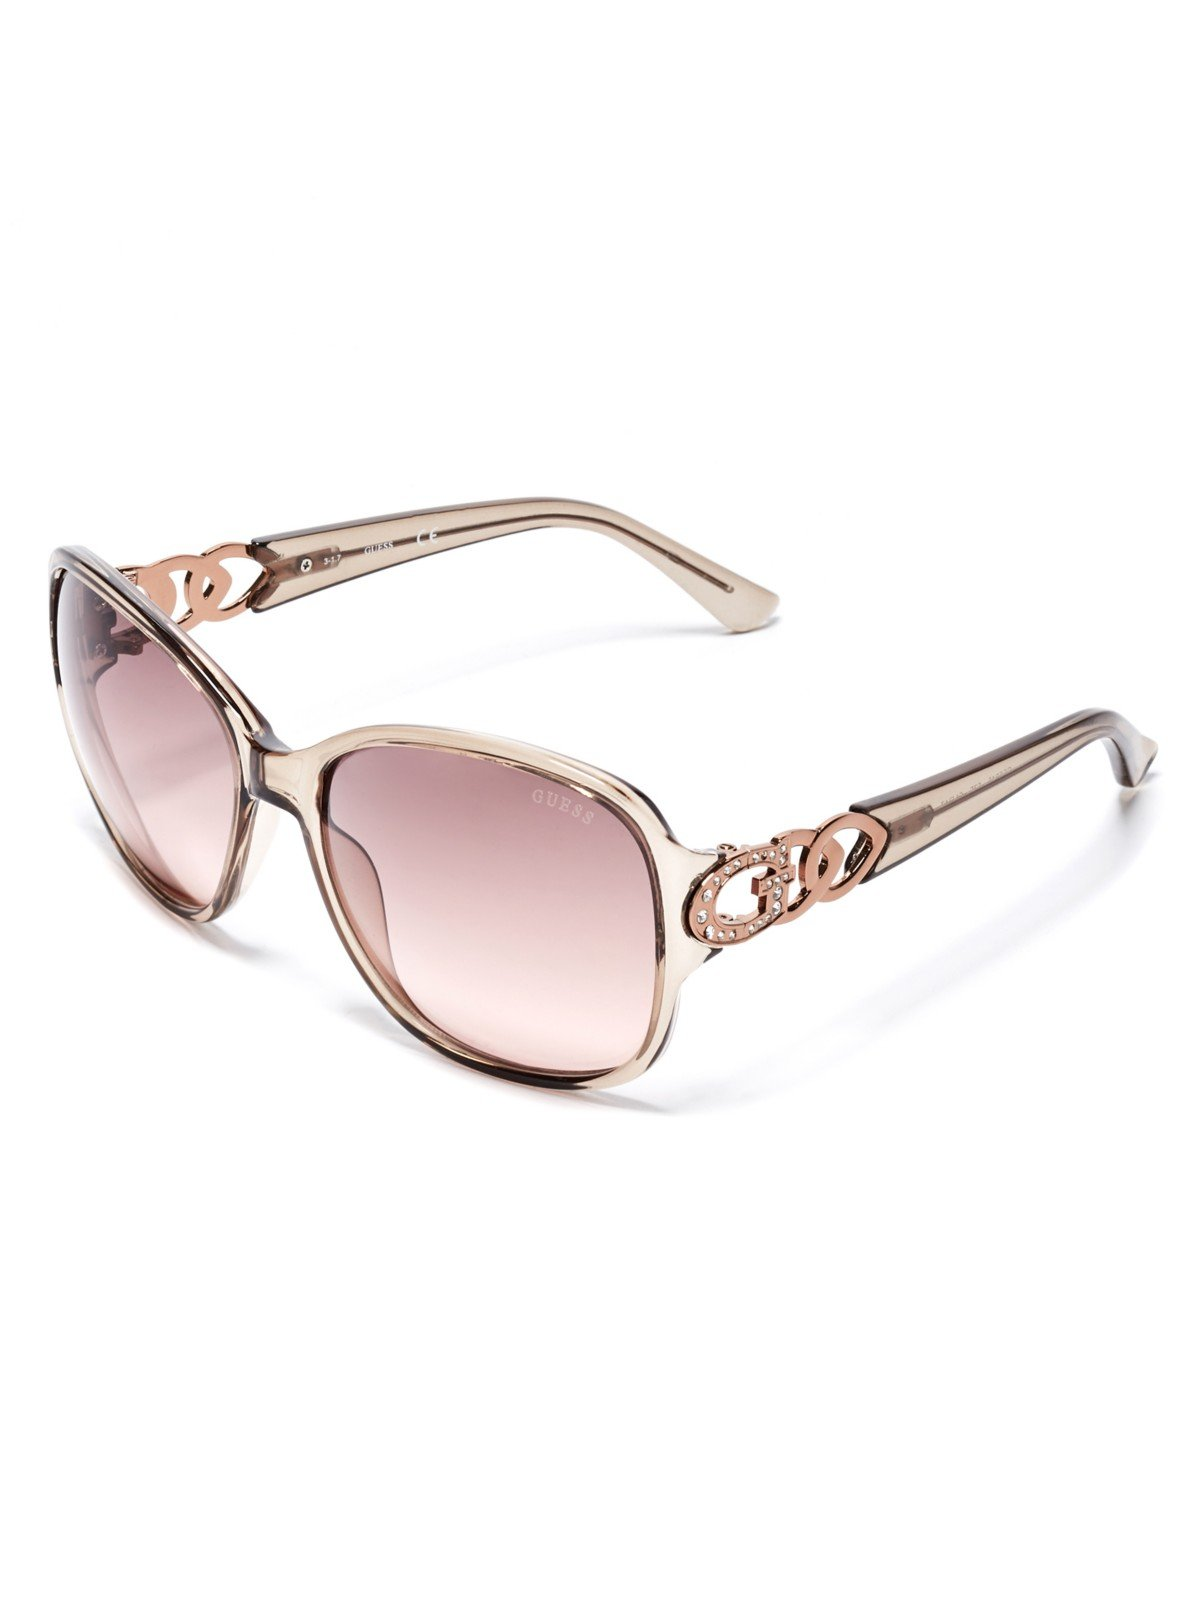 GUESS Factory Women's Oversized Chain-Trim Sunglasses